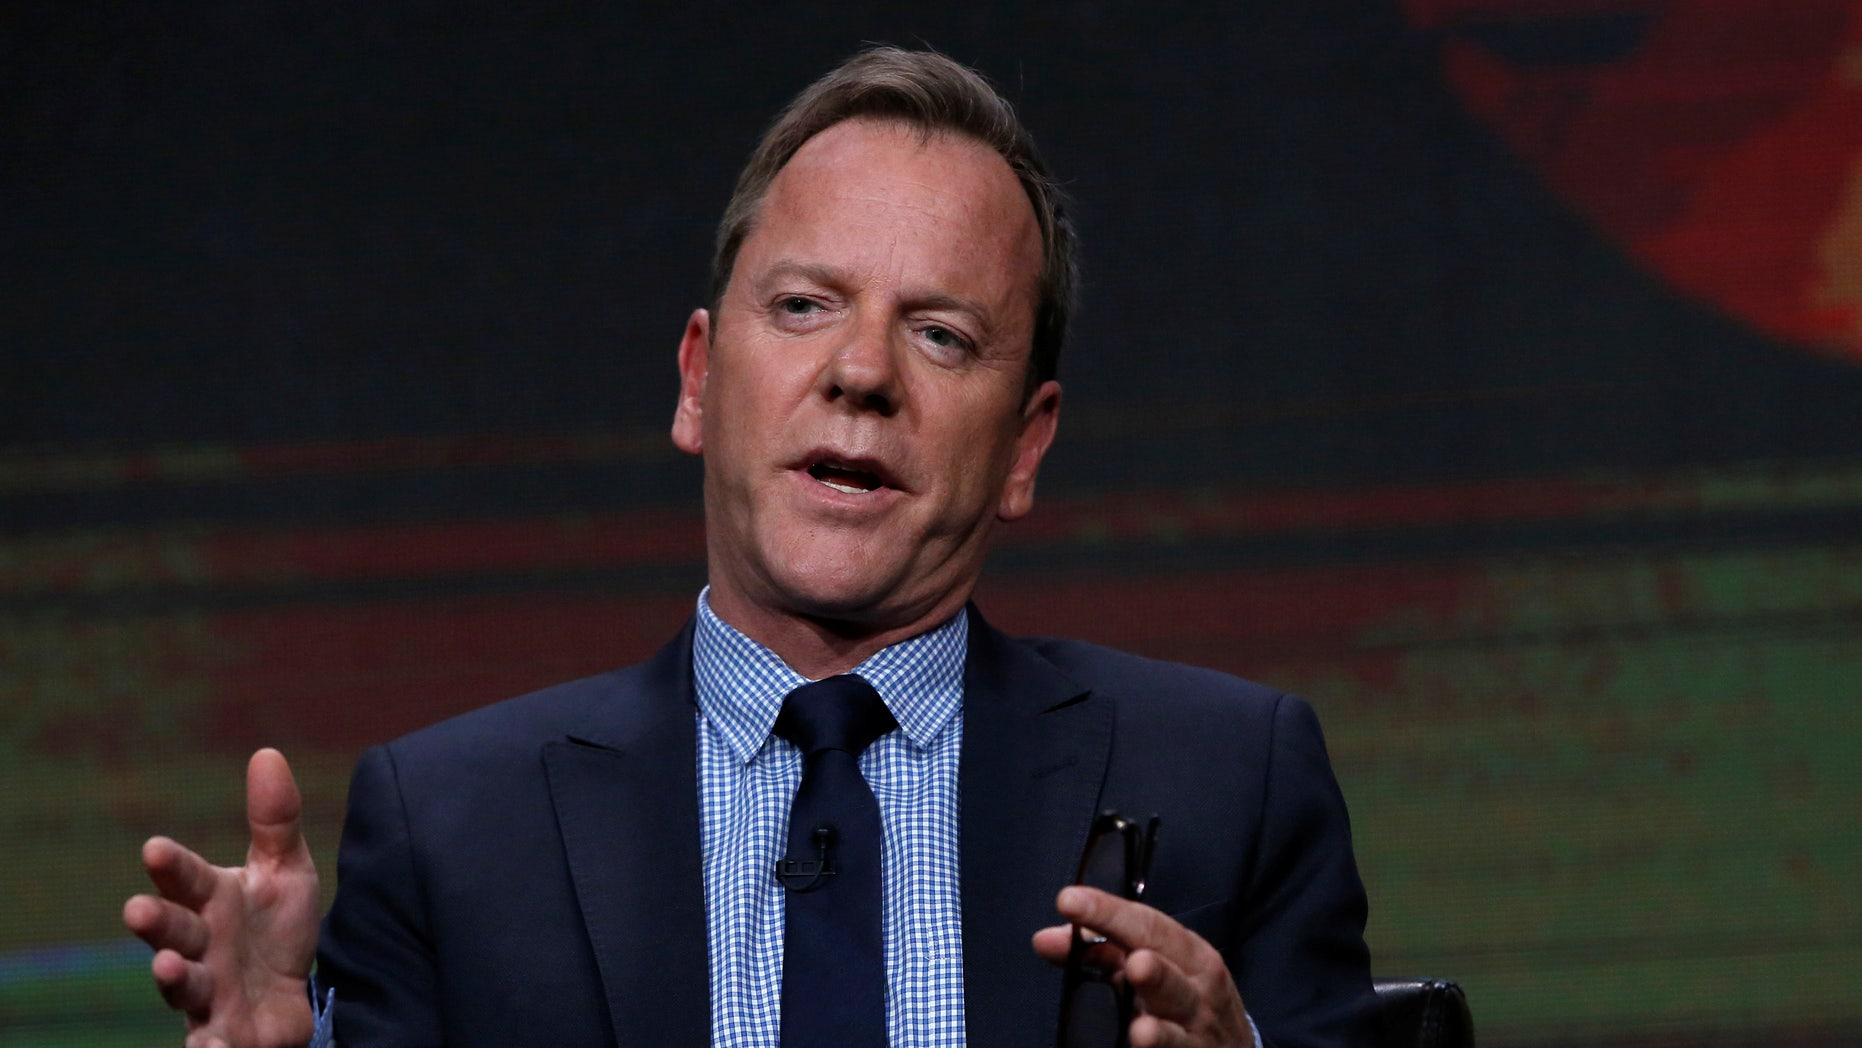 """Cast member Kiefer Sutherland attends a panel for the television series """"Designated Survivor"""" during the TCA Disney ABC Summer Press Tour in Beverly Hills, California U.S., August 4, 2016."""